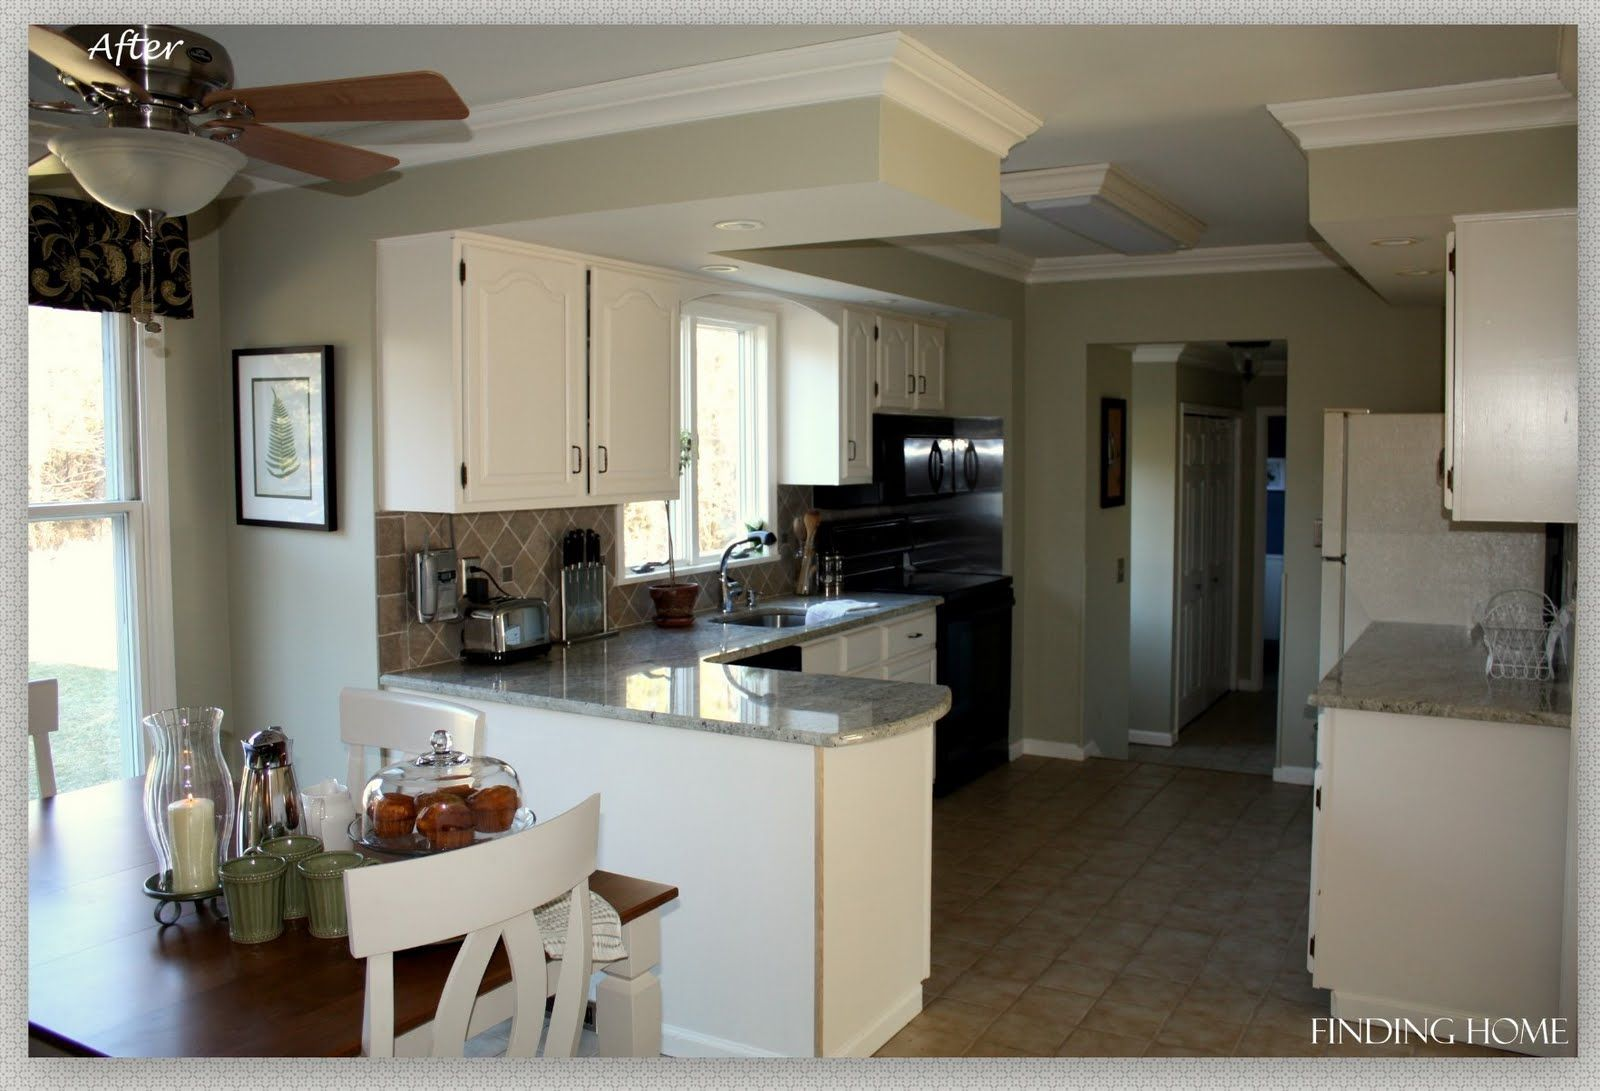 paint kitchen cabinets white white cabinet kitchen 17 best images about kitchen on pinterest modern kitchen cabinets kitchen design software and small kitchens